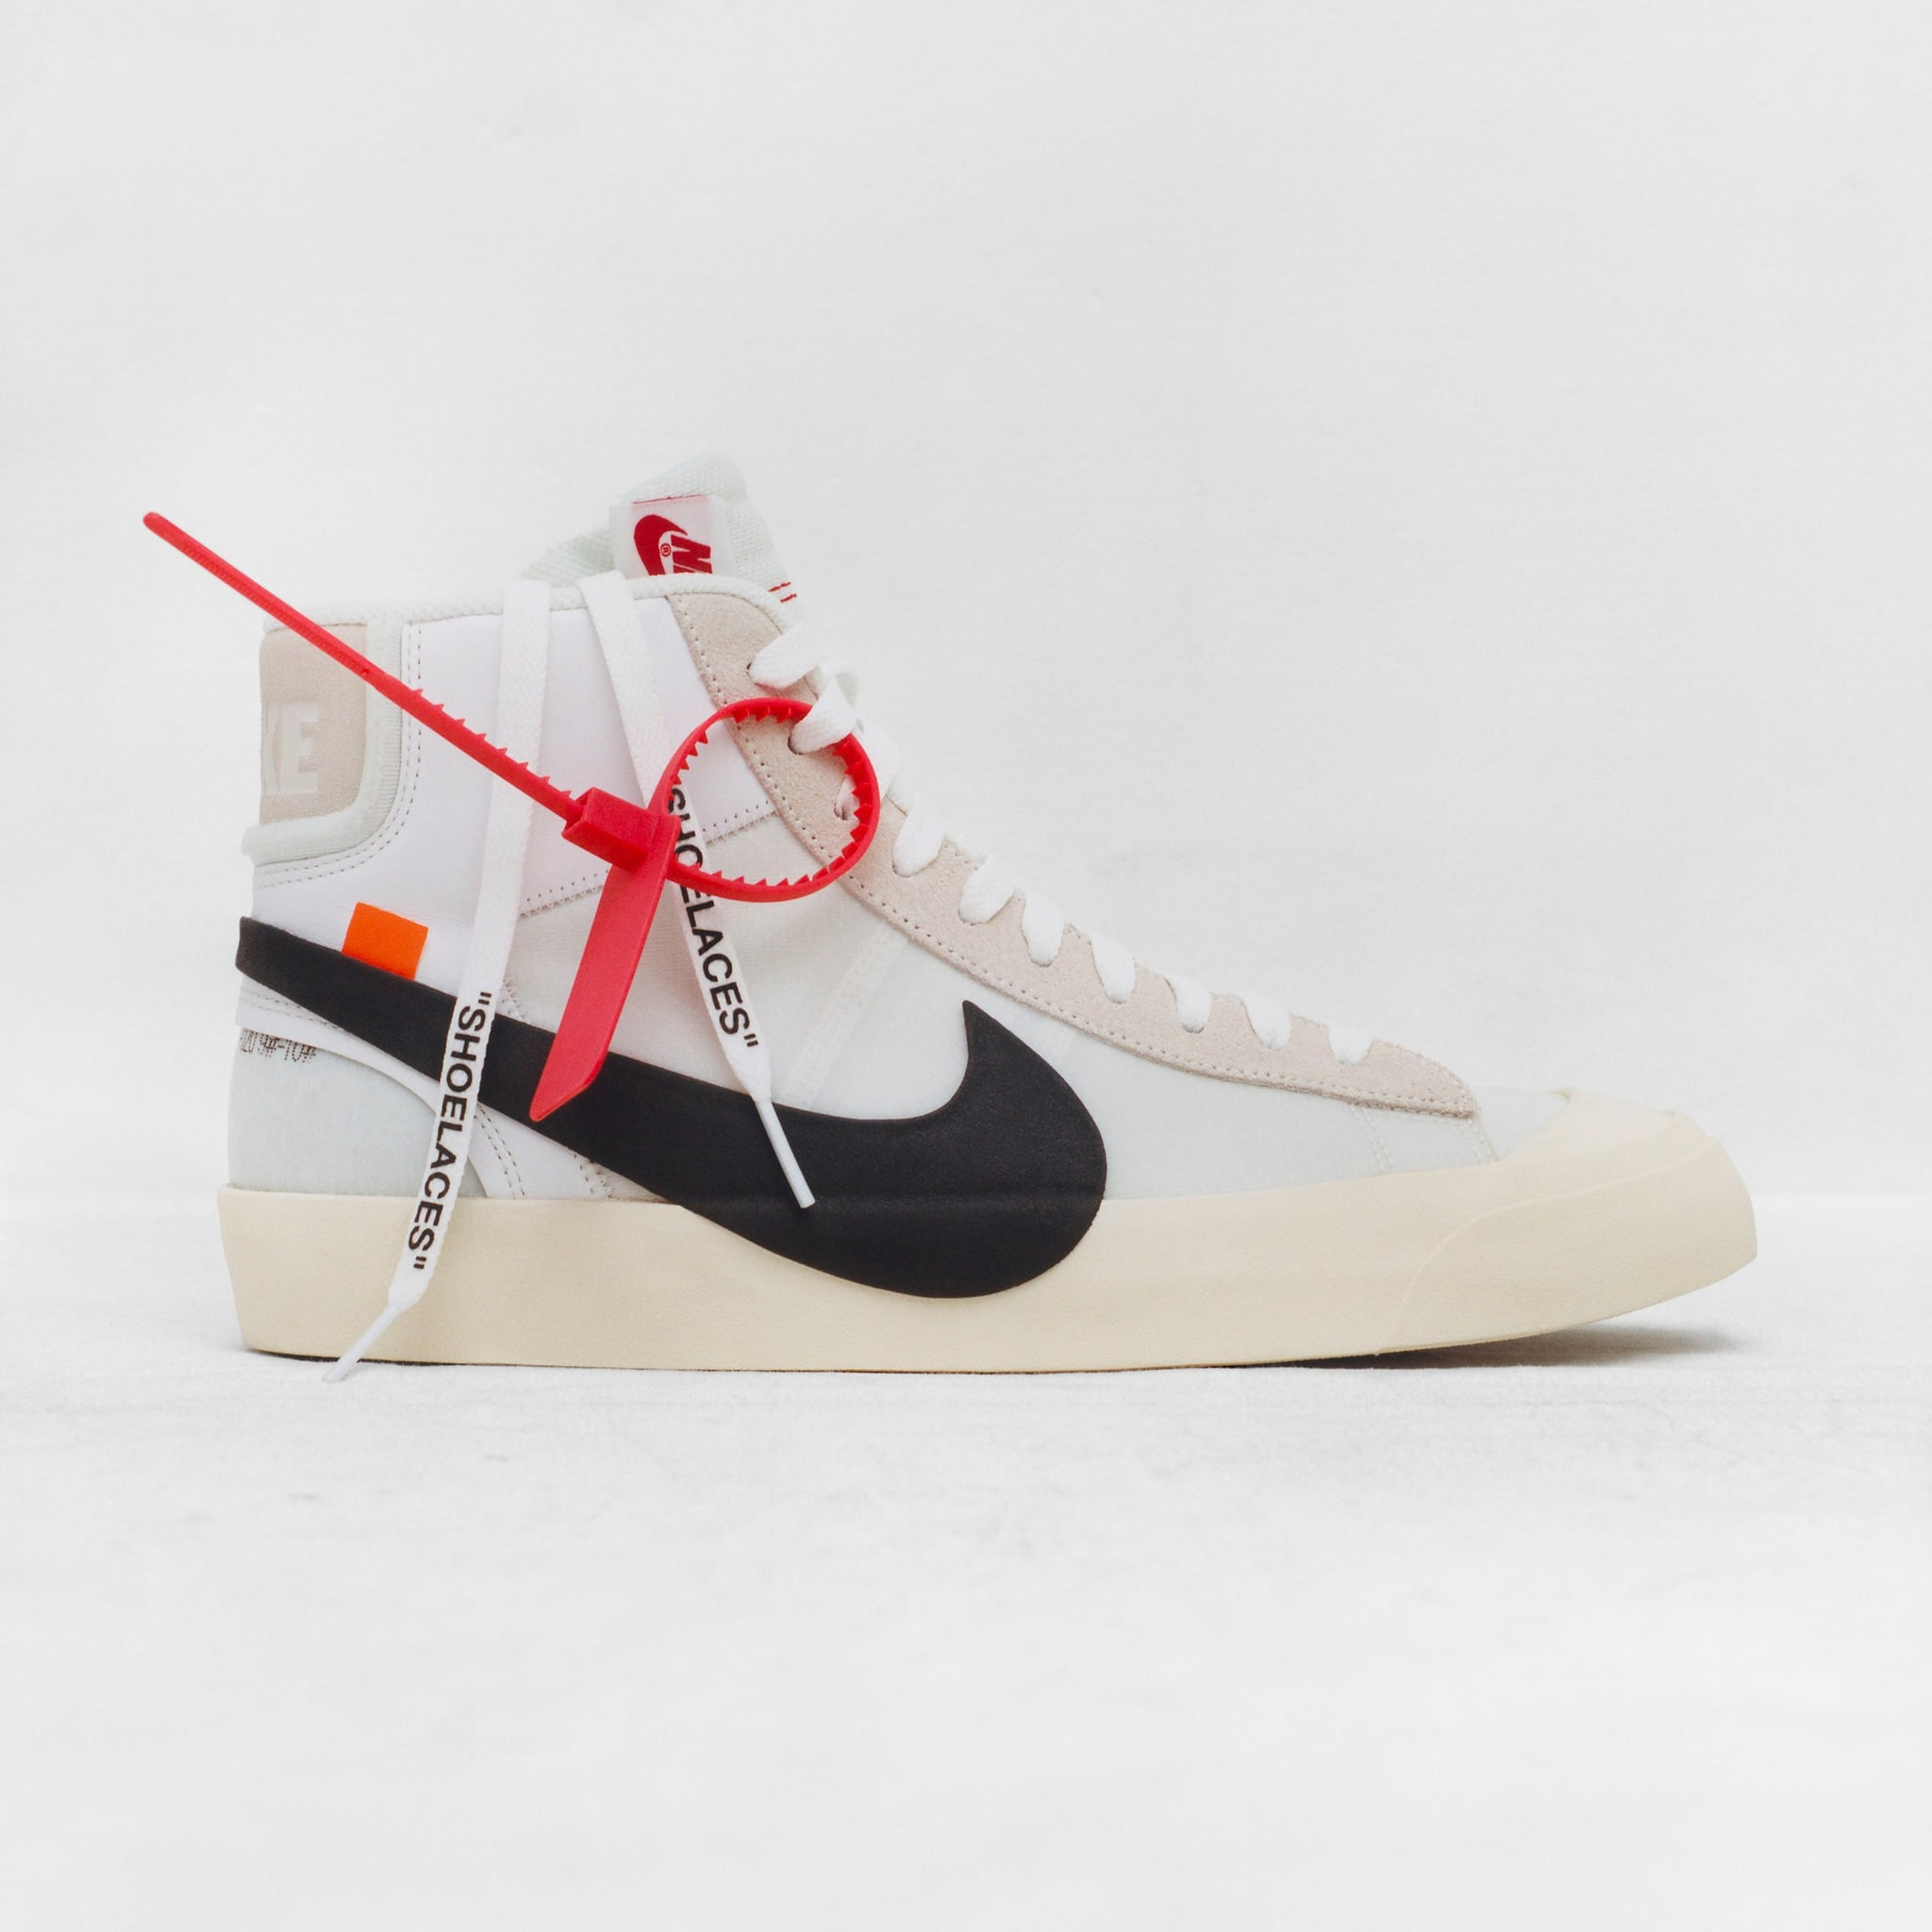 Could Virgil Abloh's Off White x Nike Collaboration Be